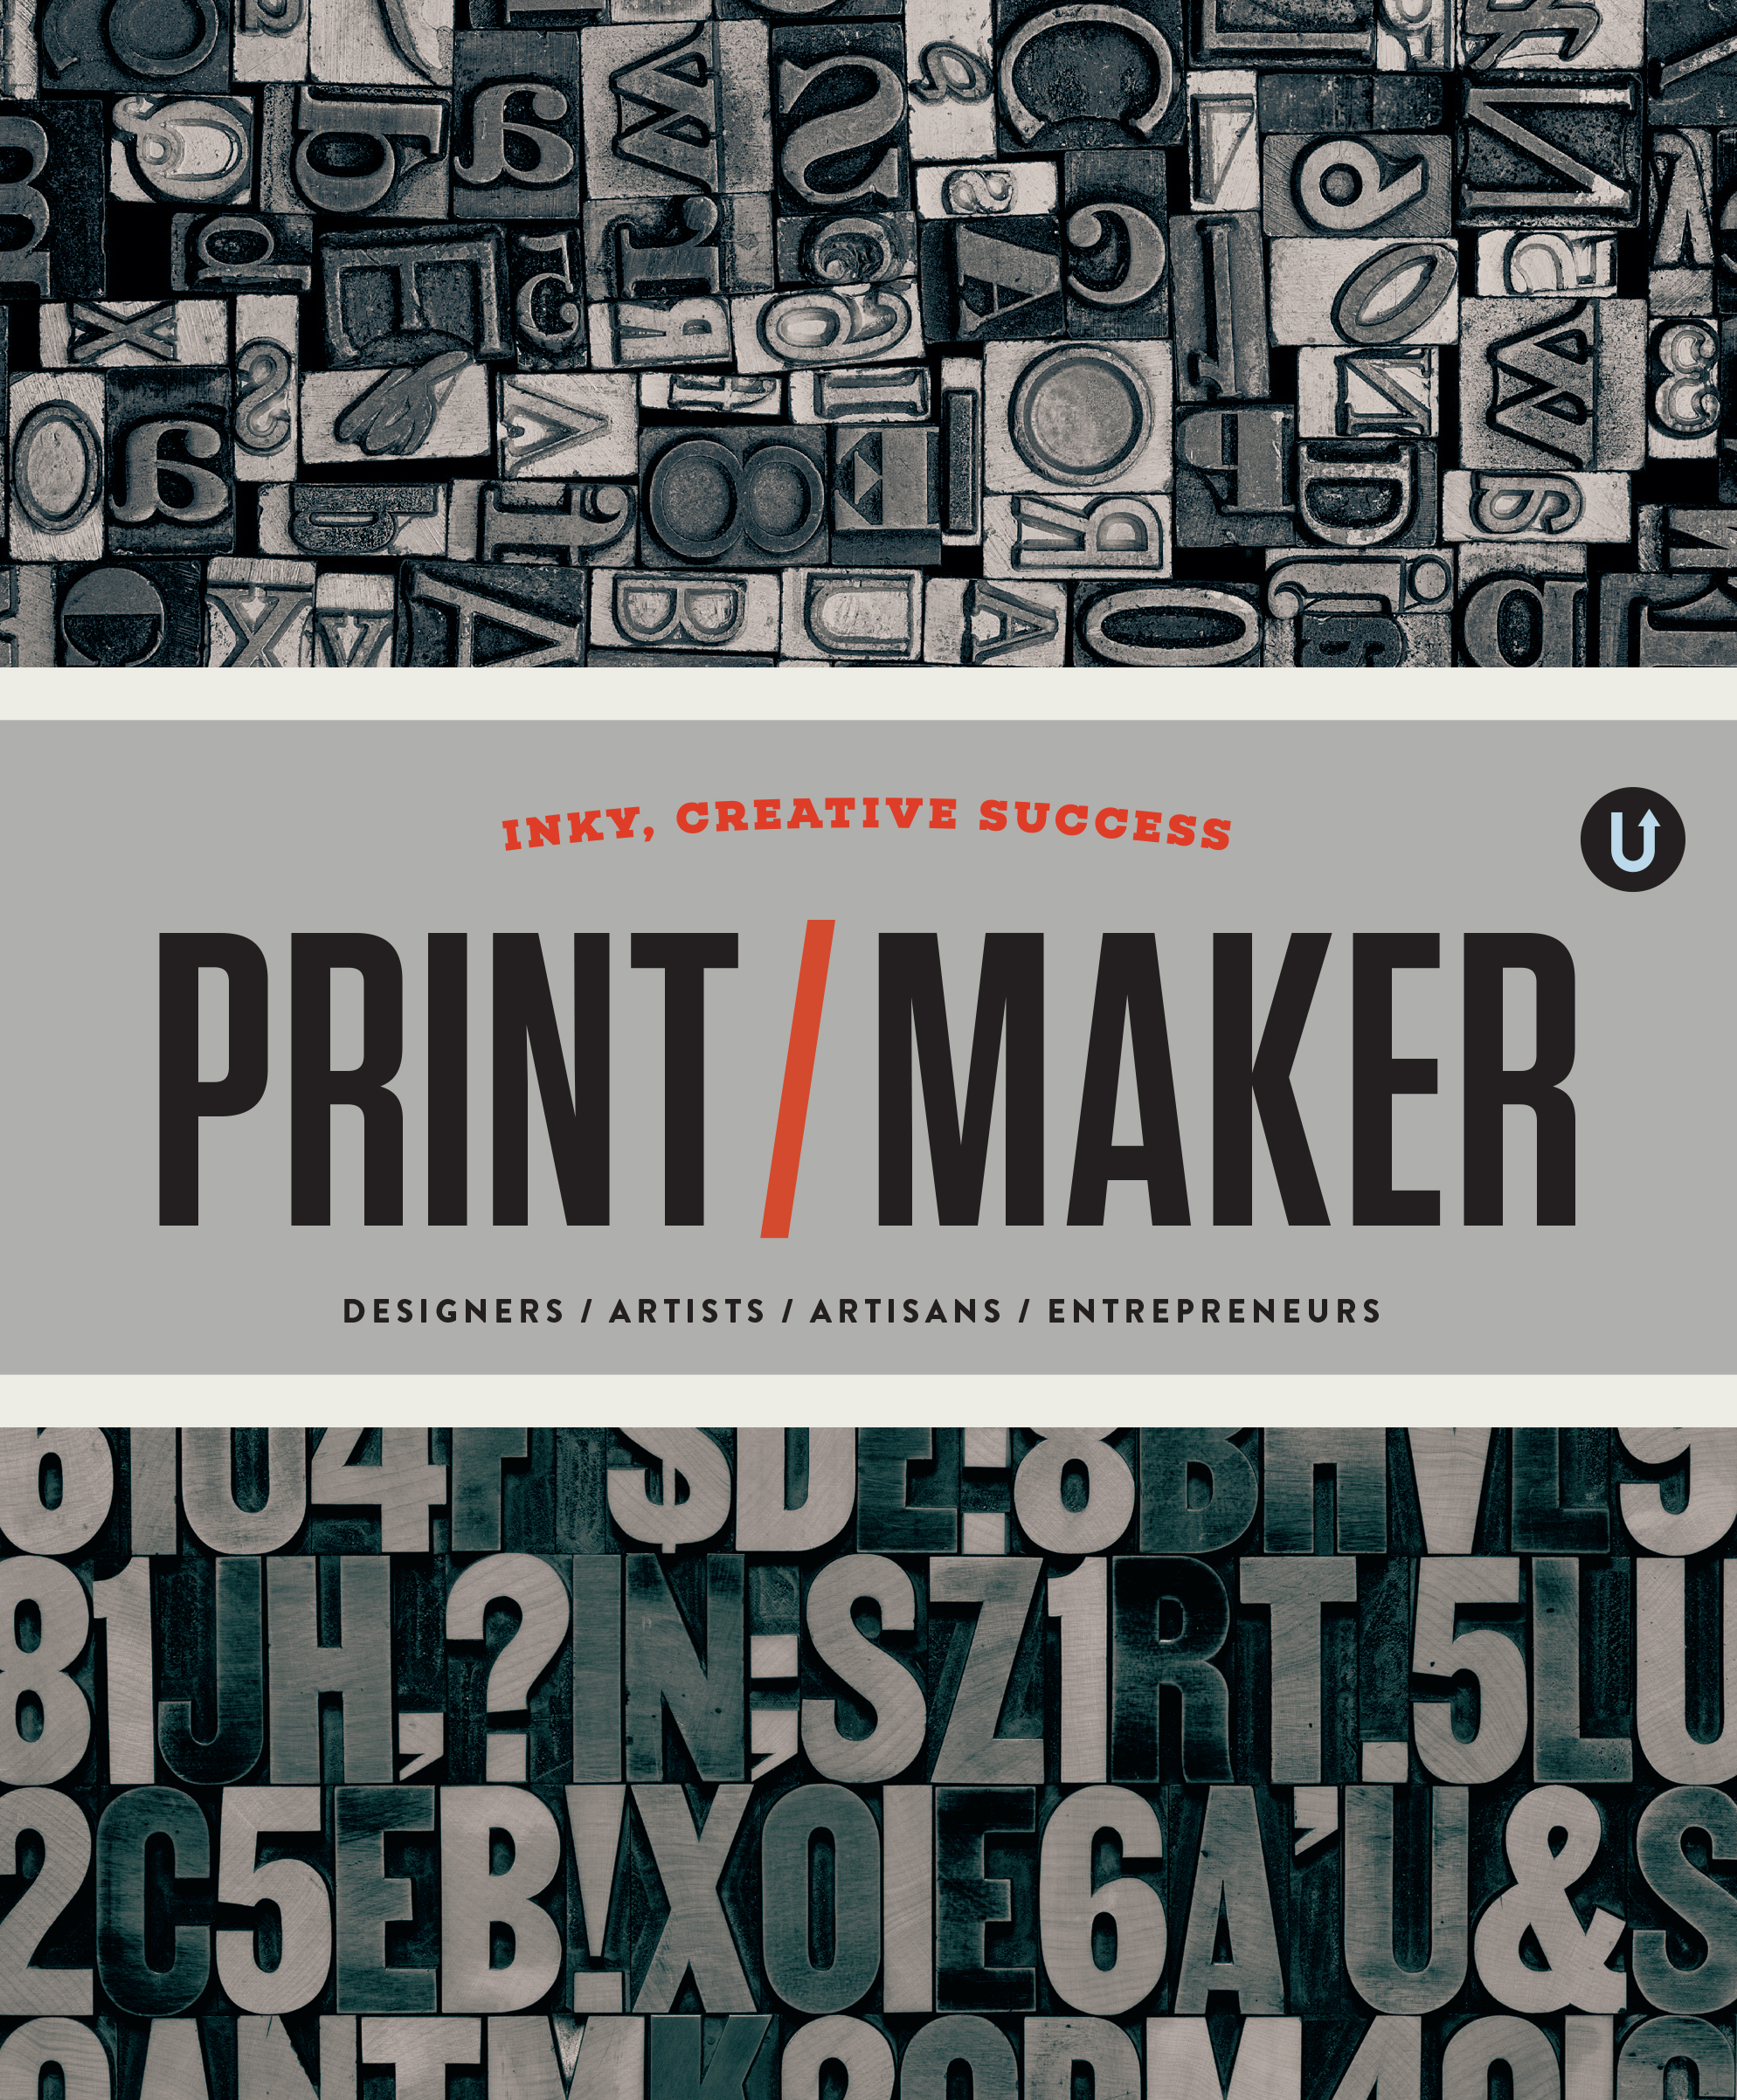 OUR NEWEST BOOK! PRINT/MAKER  This  368-page book  features profiles of 48 designers, artists, artisans and entrepreneurs who make things with print. It has a dust jacket that can be folded to reveal one of four designs. Or you can use the dust jacket as gift wrap, collage or for another creative project.